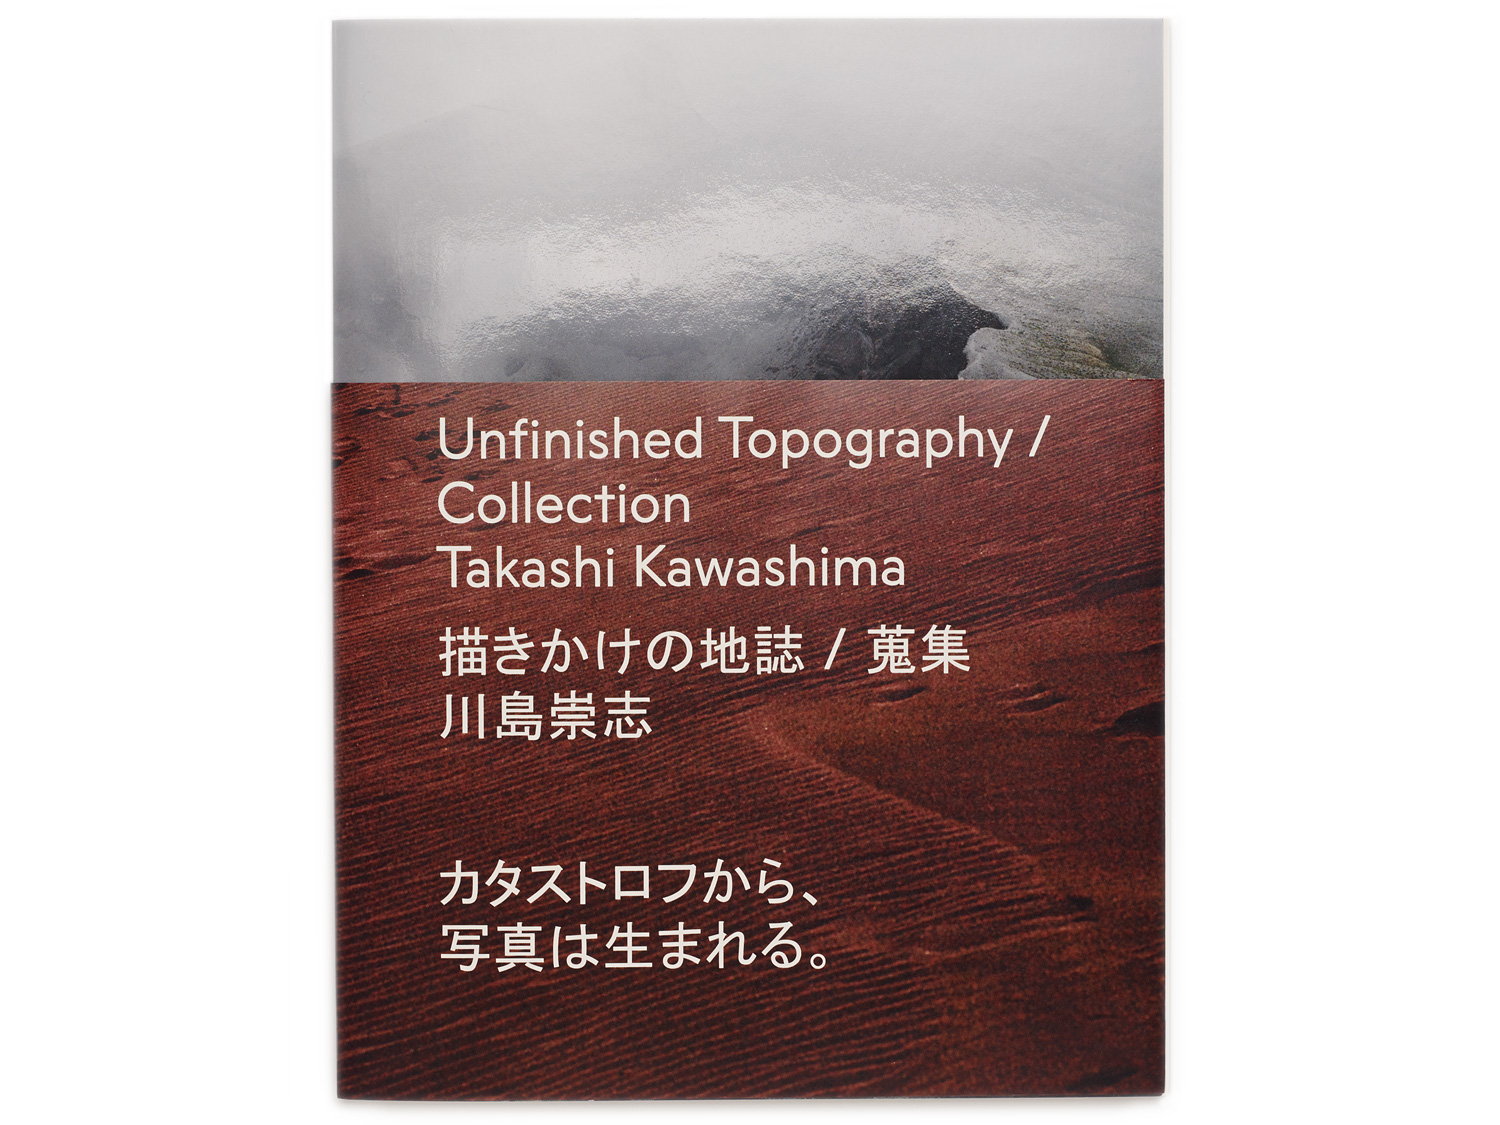 3/31 – Unfinished Topography/Collection